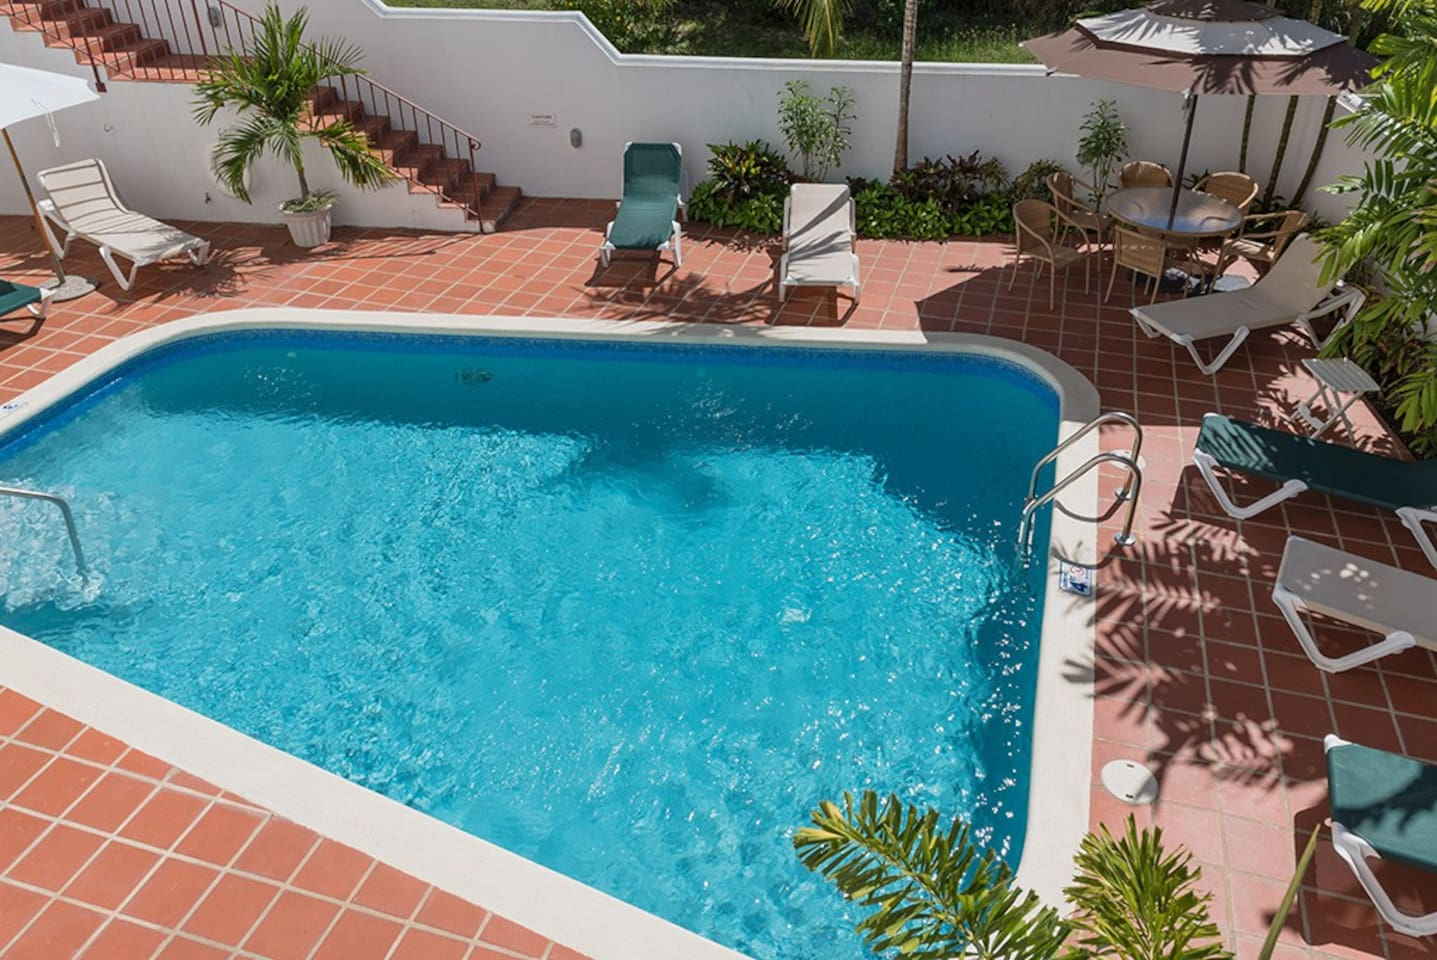 The swimming pool - ready for a dip ?